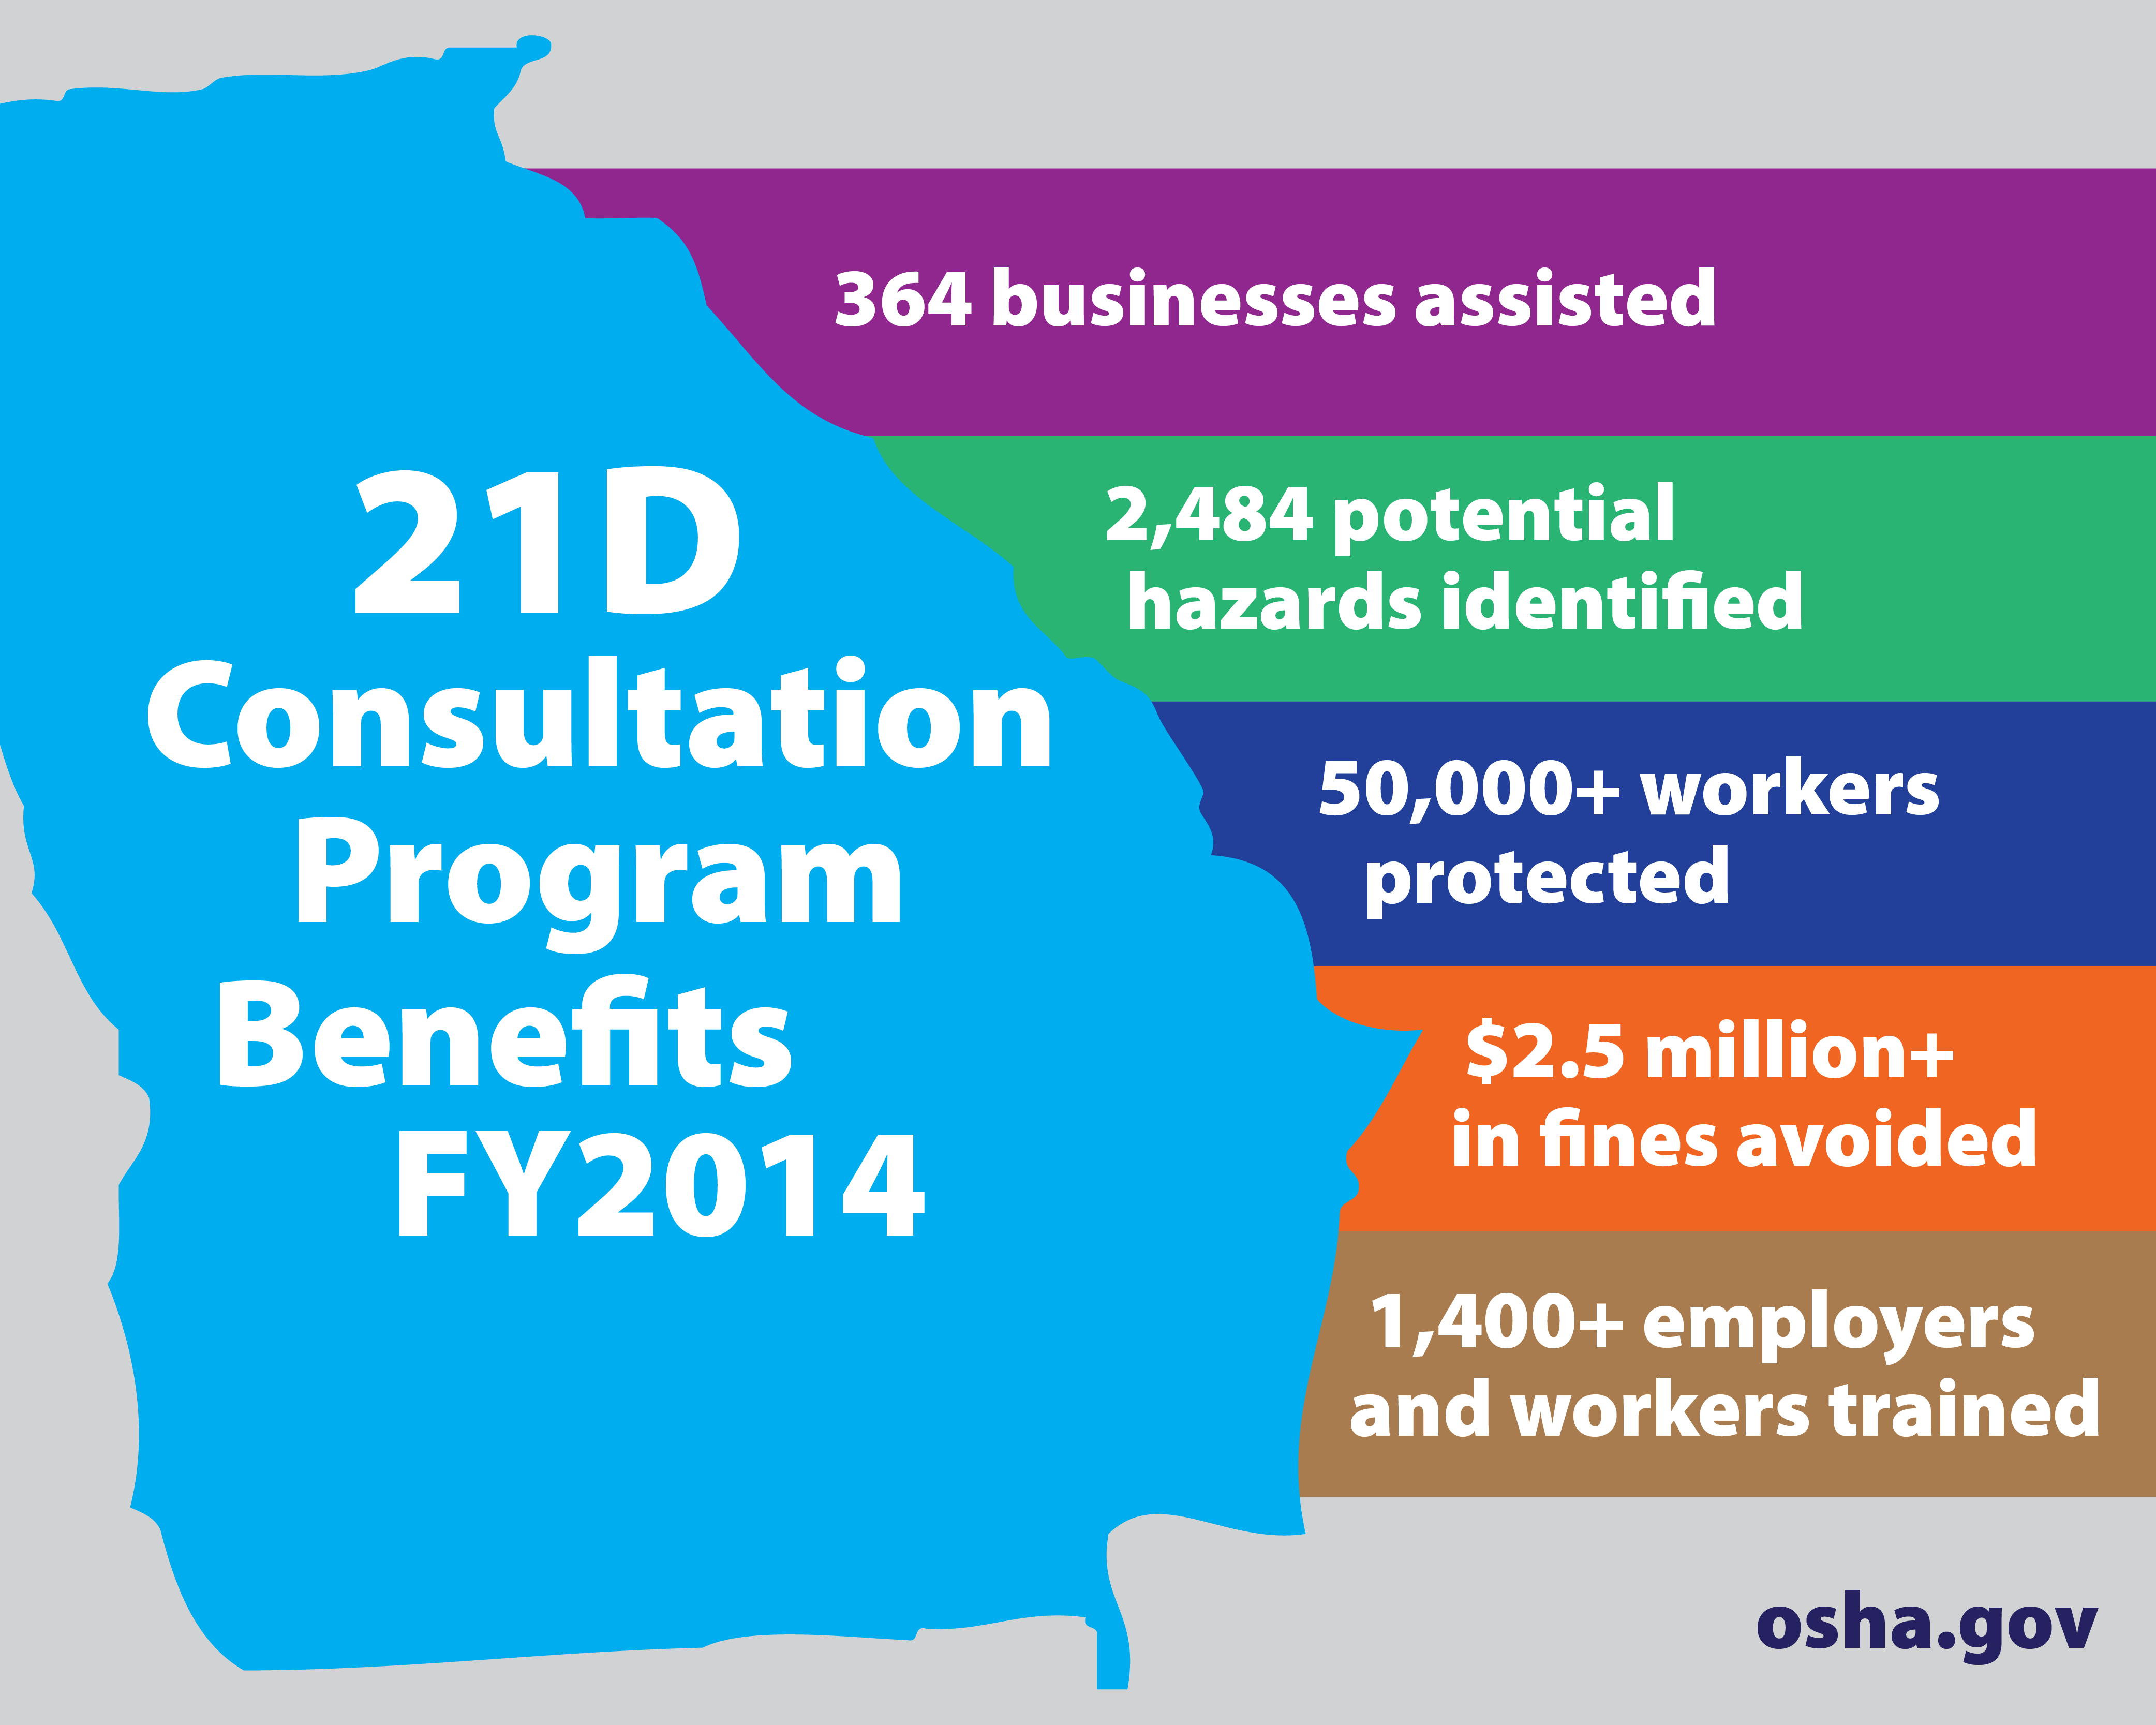 21D consultation program benefits FY2014 - 364 businesses assisted, 2,484 potential hazards identified, 50,000+ workers protected, $2.5 million+ in fines avoided, 1,400+ employers and workers trained.